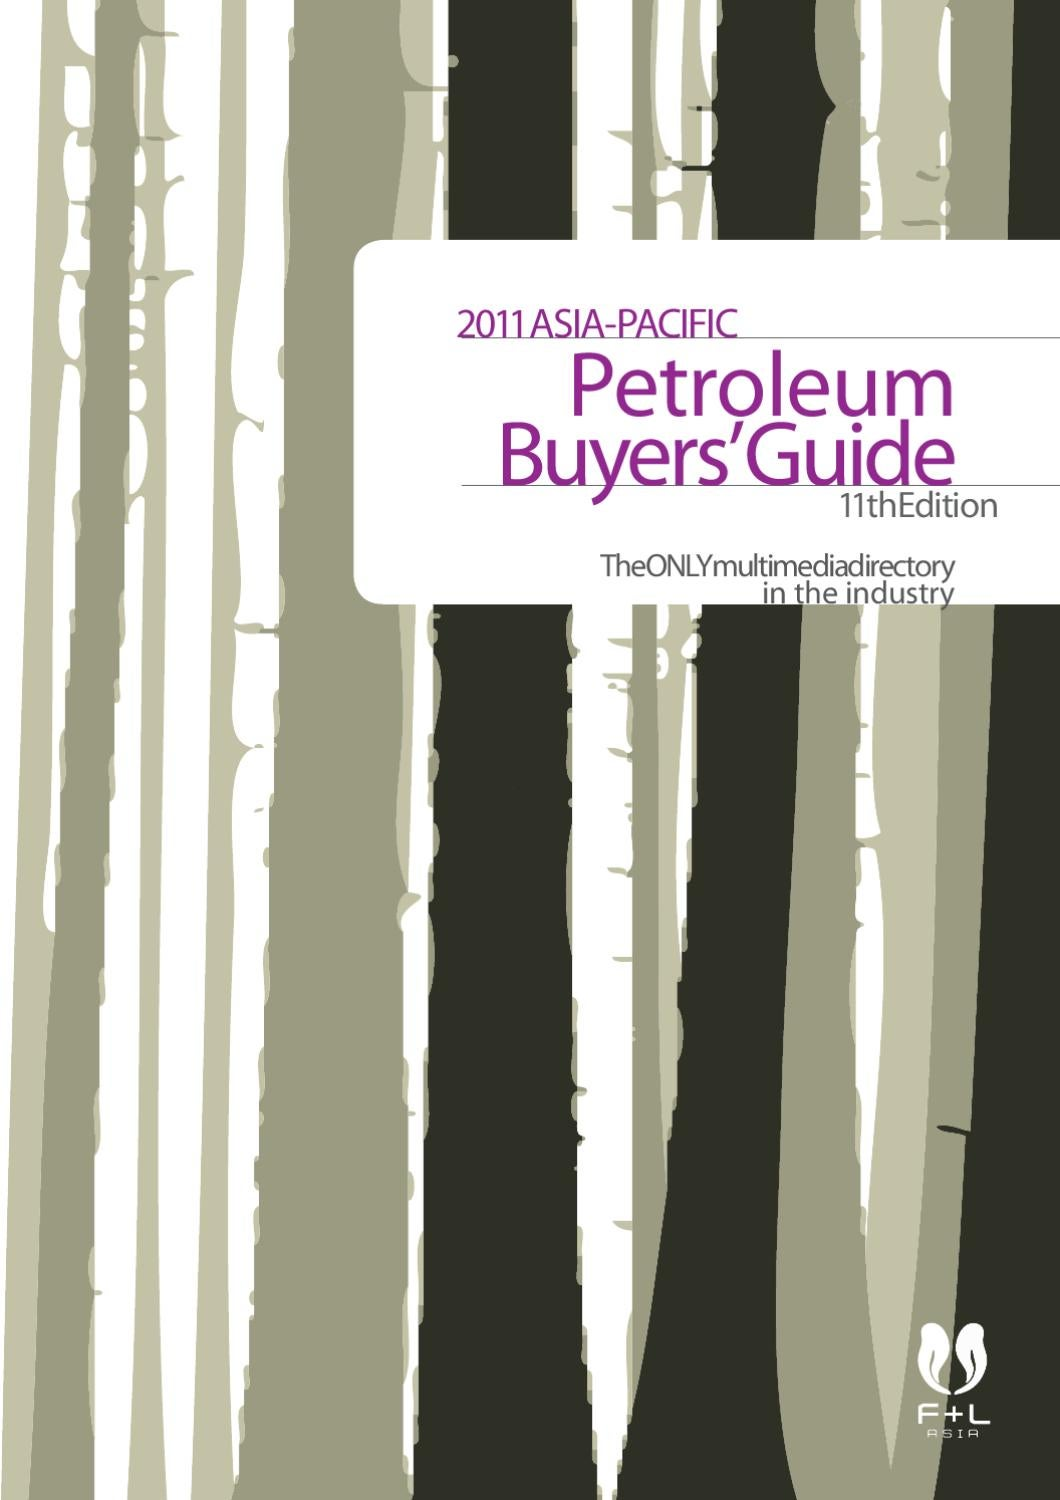 11th Asia-Pacific Petroleum Buyers' Guide by F+L Asia - issuu